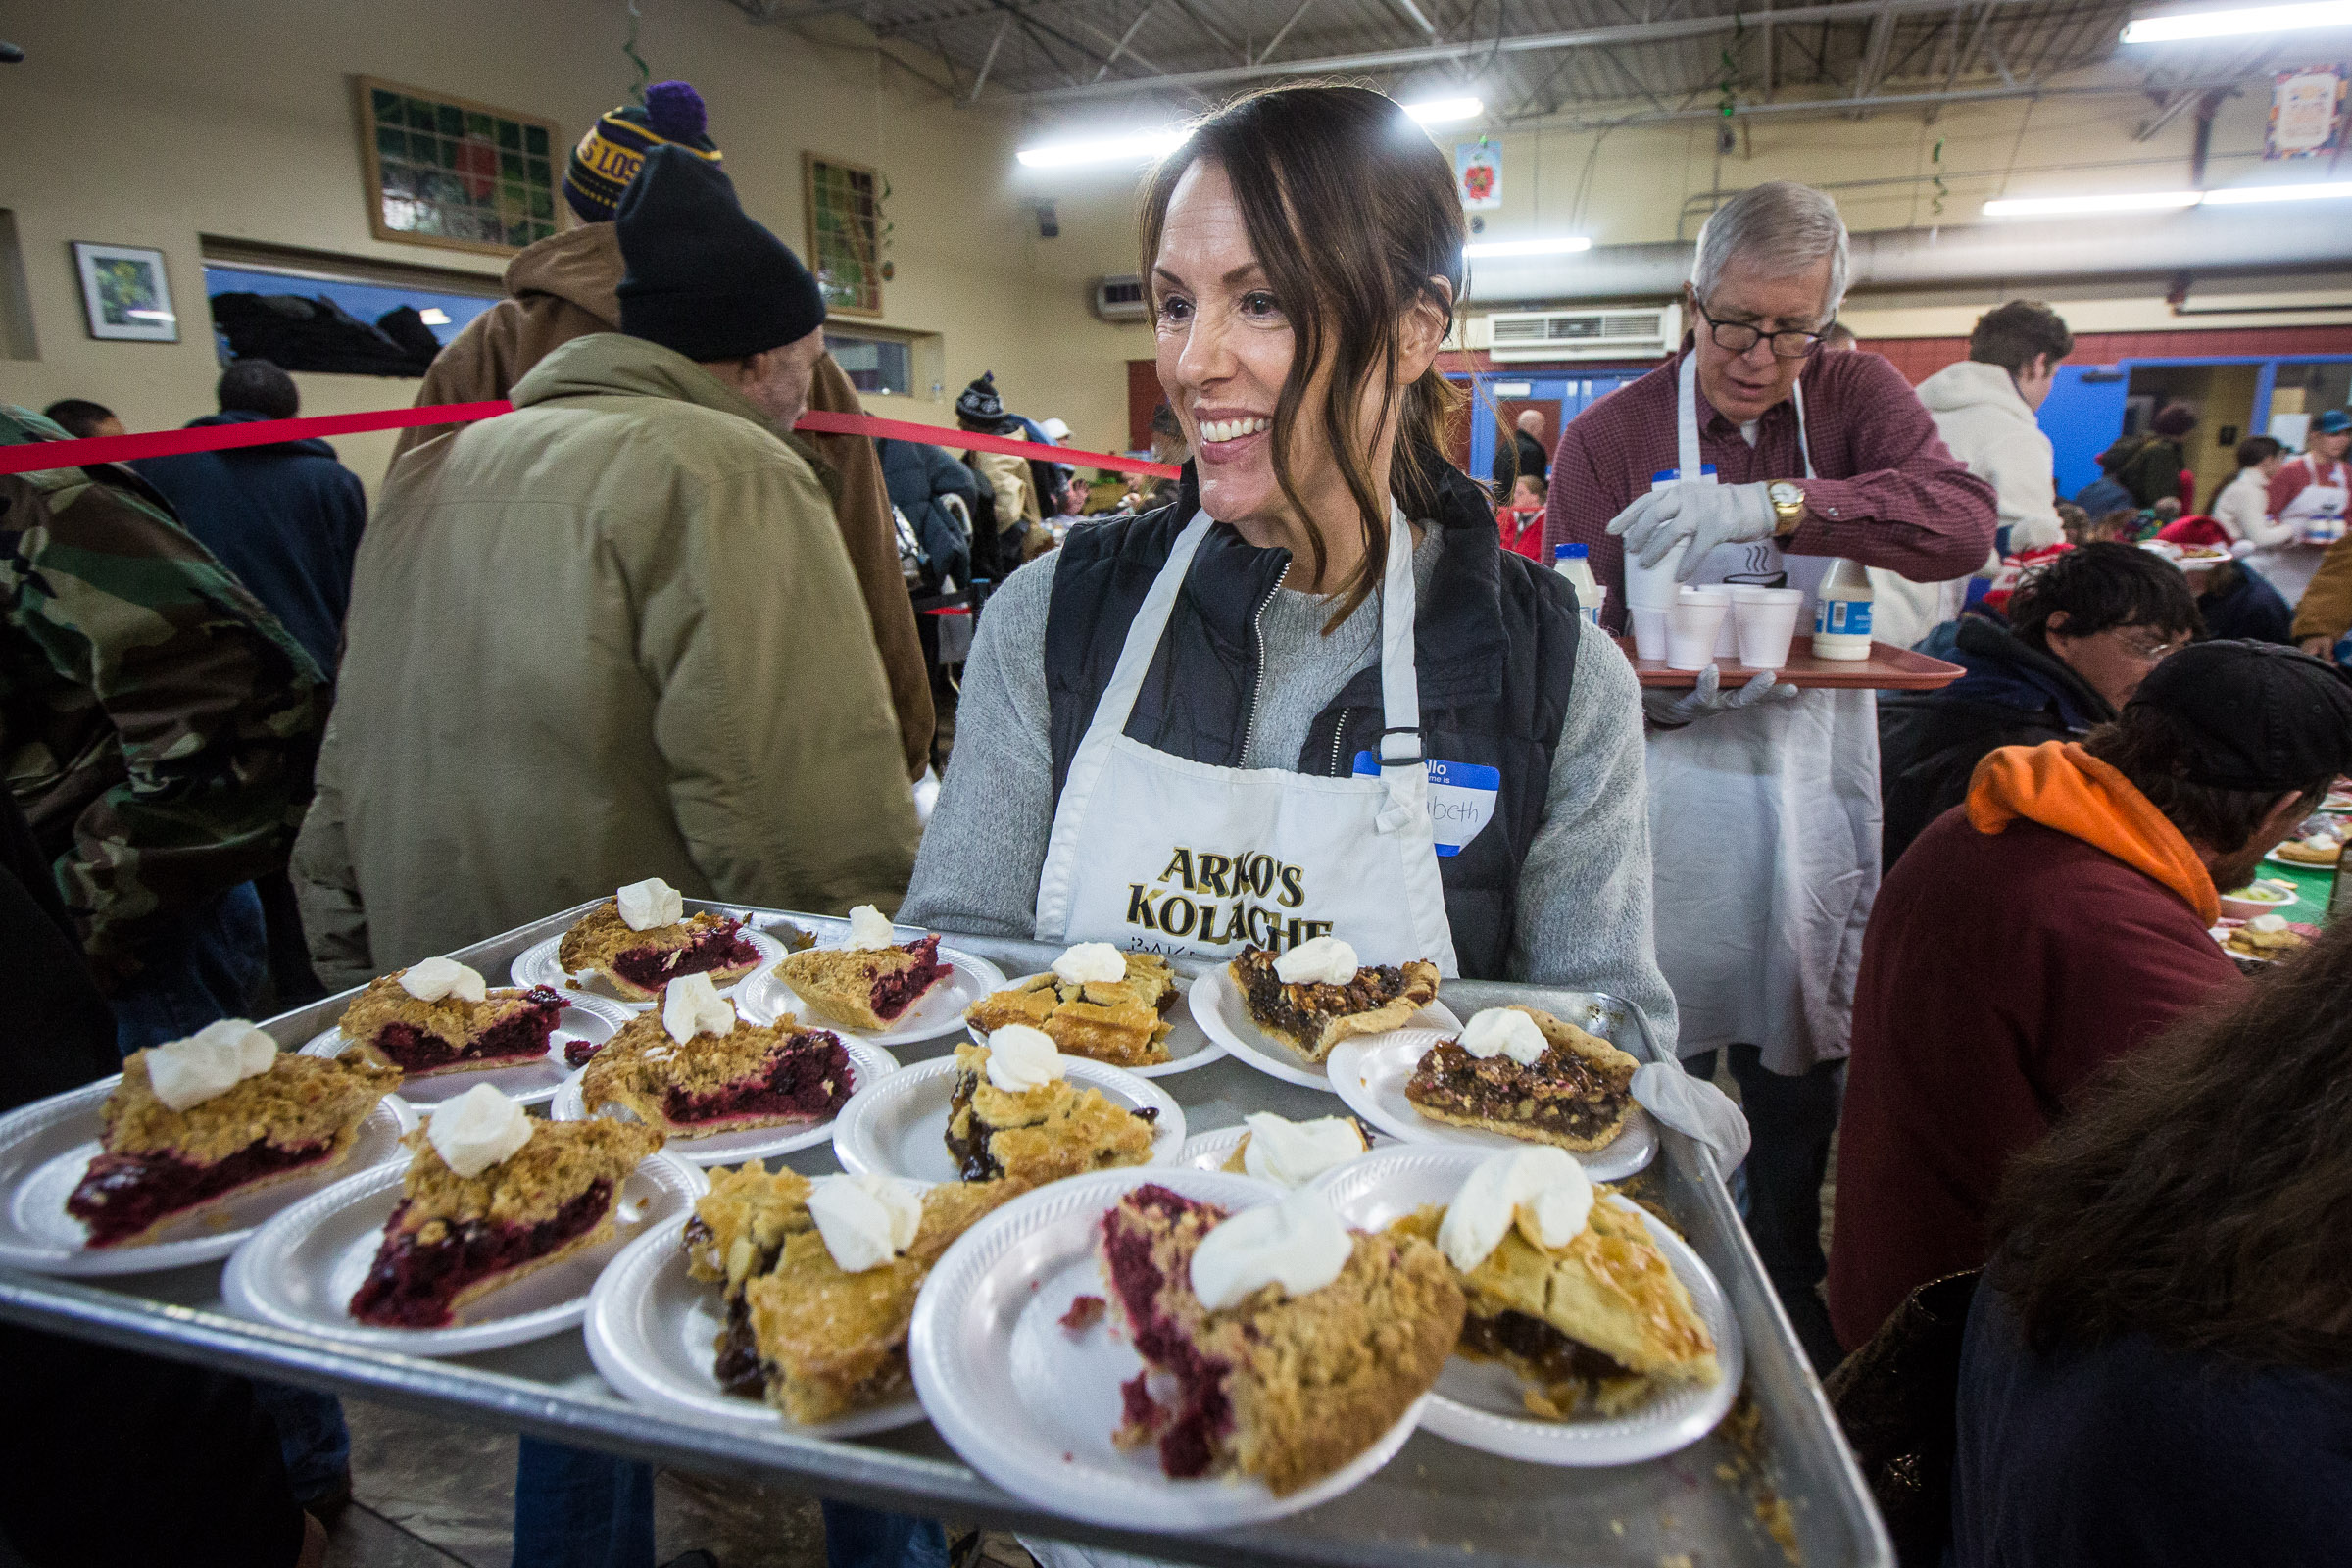 Elizabeth Weiler serves up pies as Pamela Atkinson and other community leaders serve the annual Christmas dinner to more than 800 homeless Utahns at St. Vincent de Paul Dining Hall in Salt Lake City on Tuesday, Dec. 25, 2018.